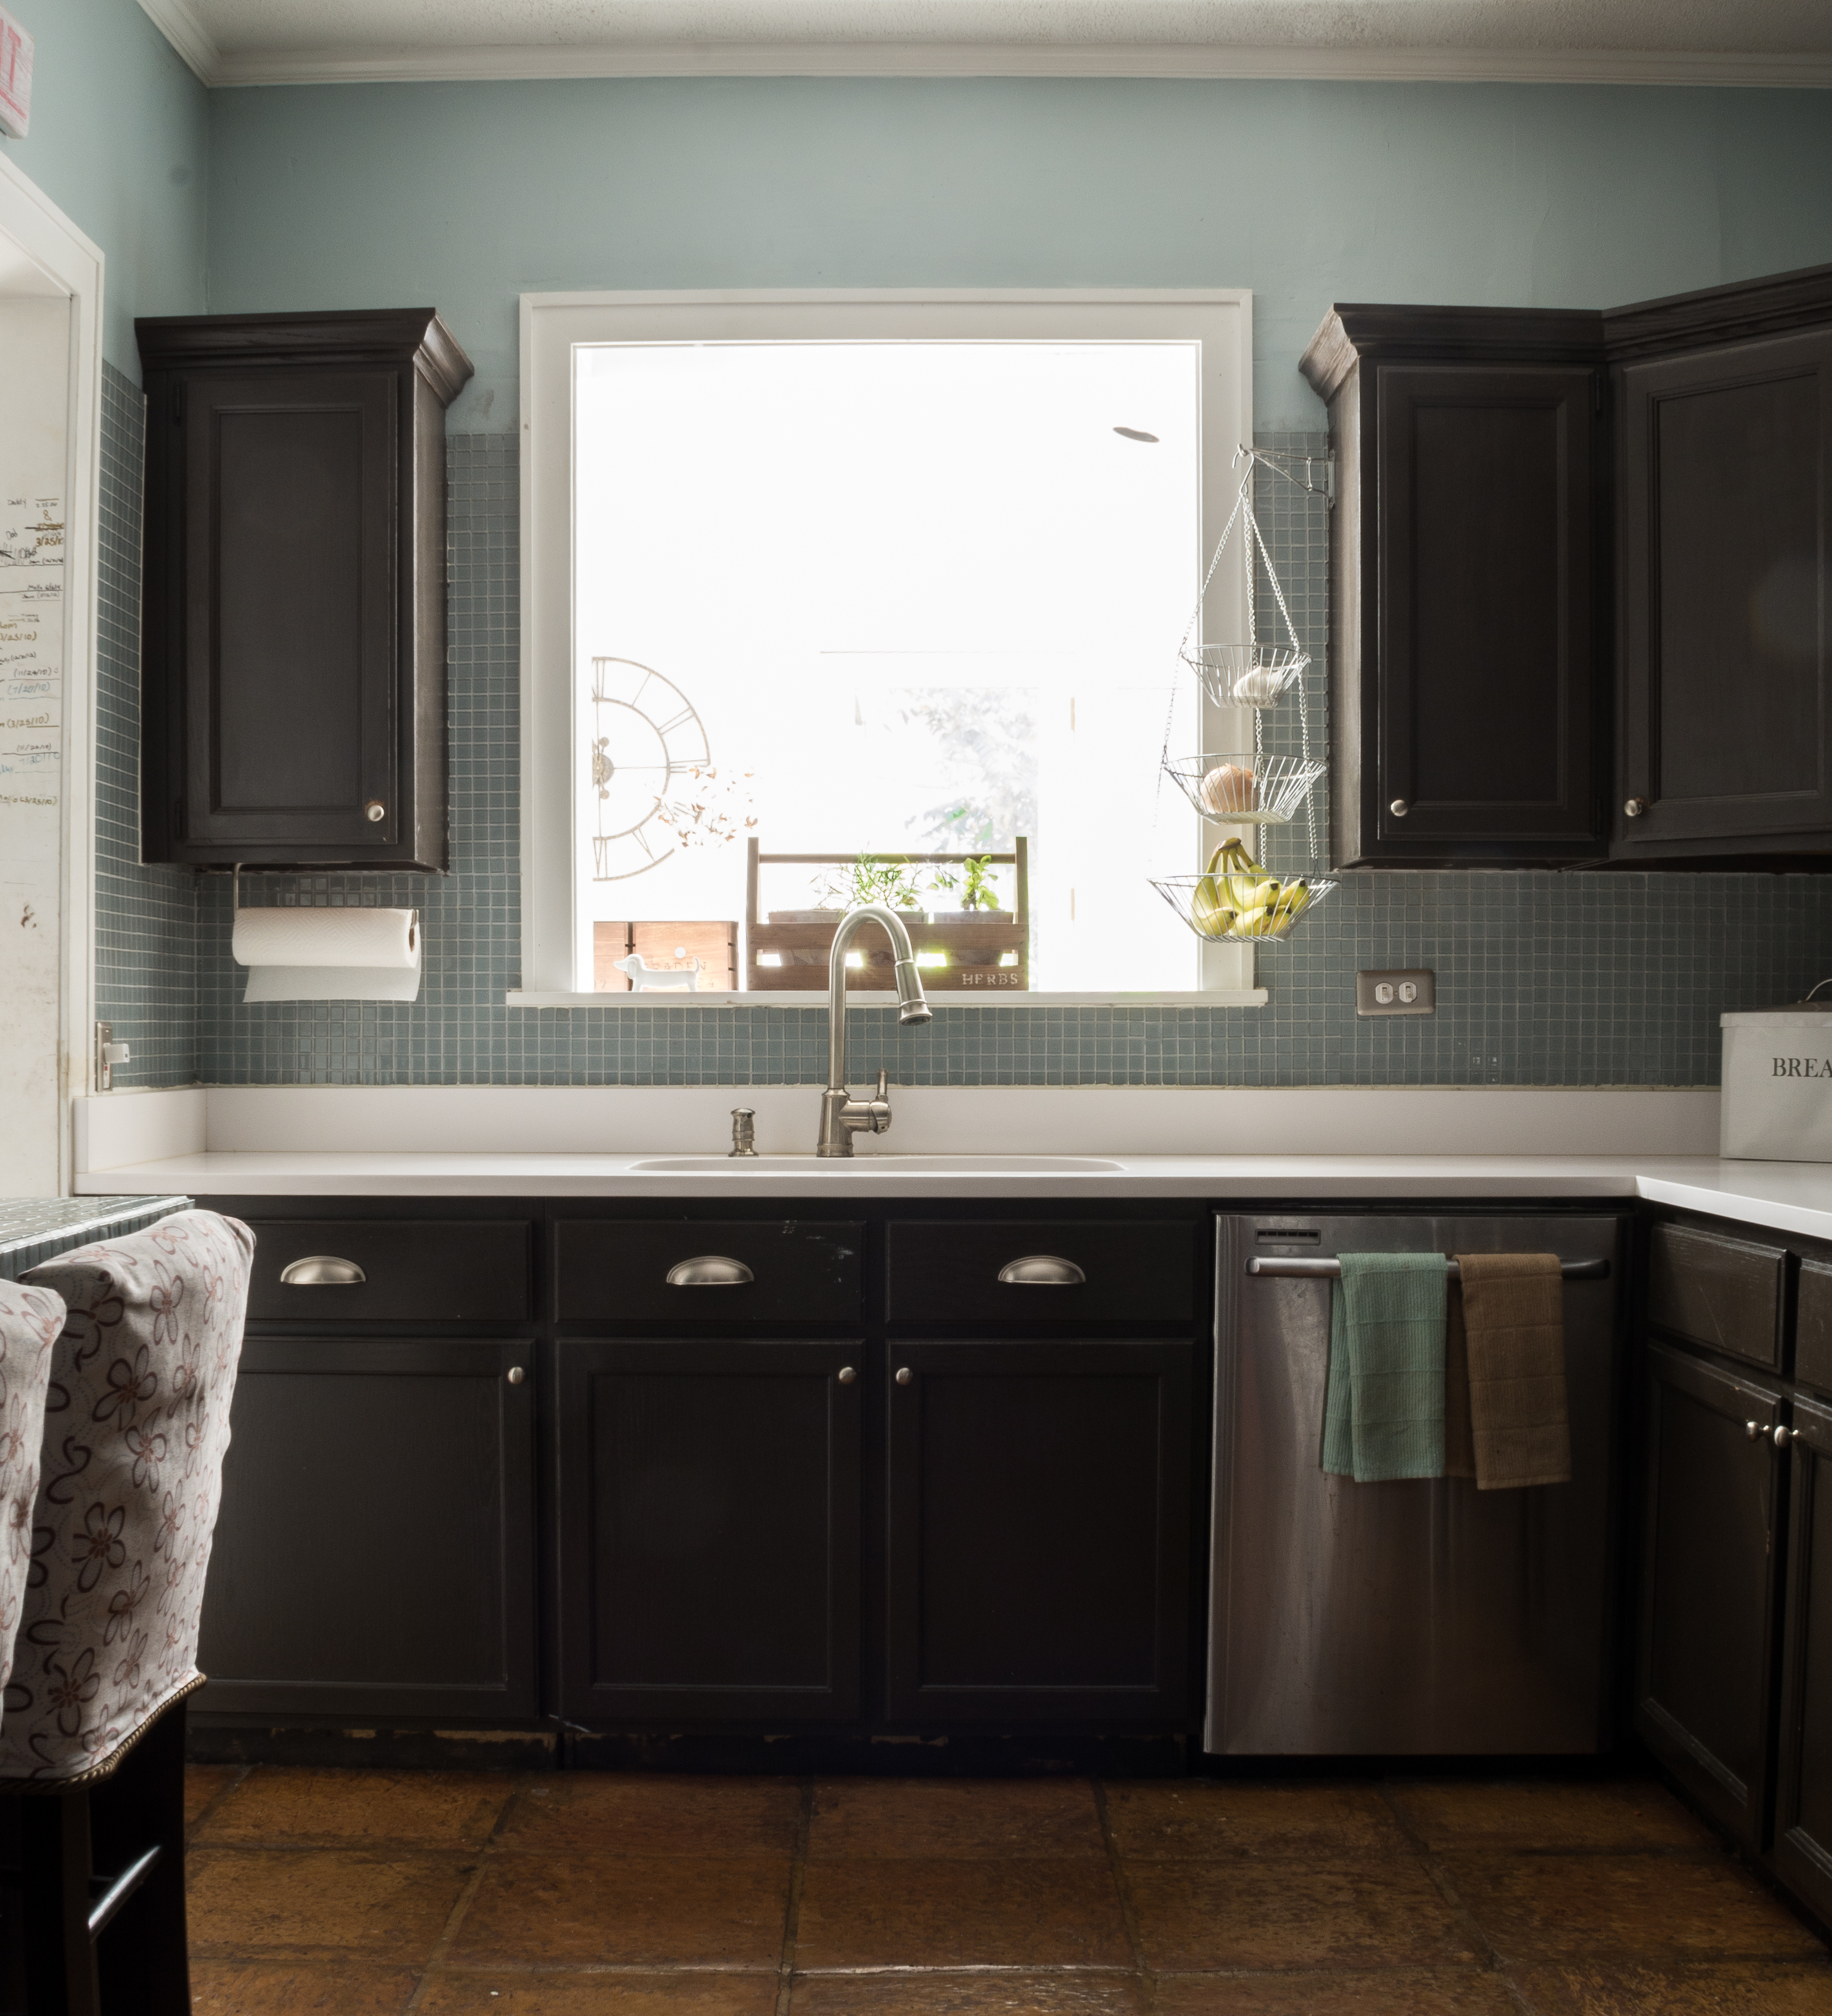 painting-builder-grade-kitchen-cabinets (1 of 15) - It All ...